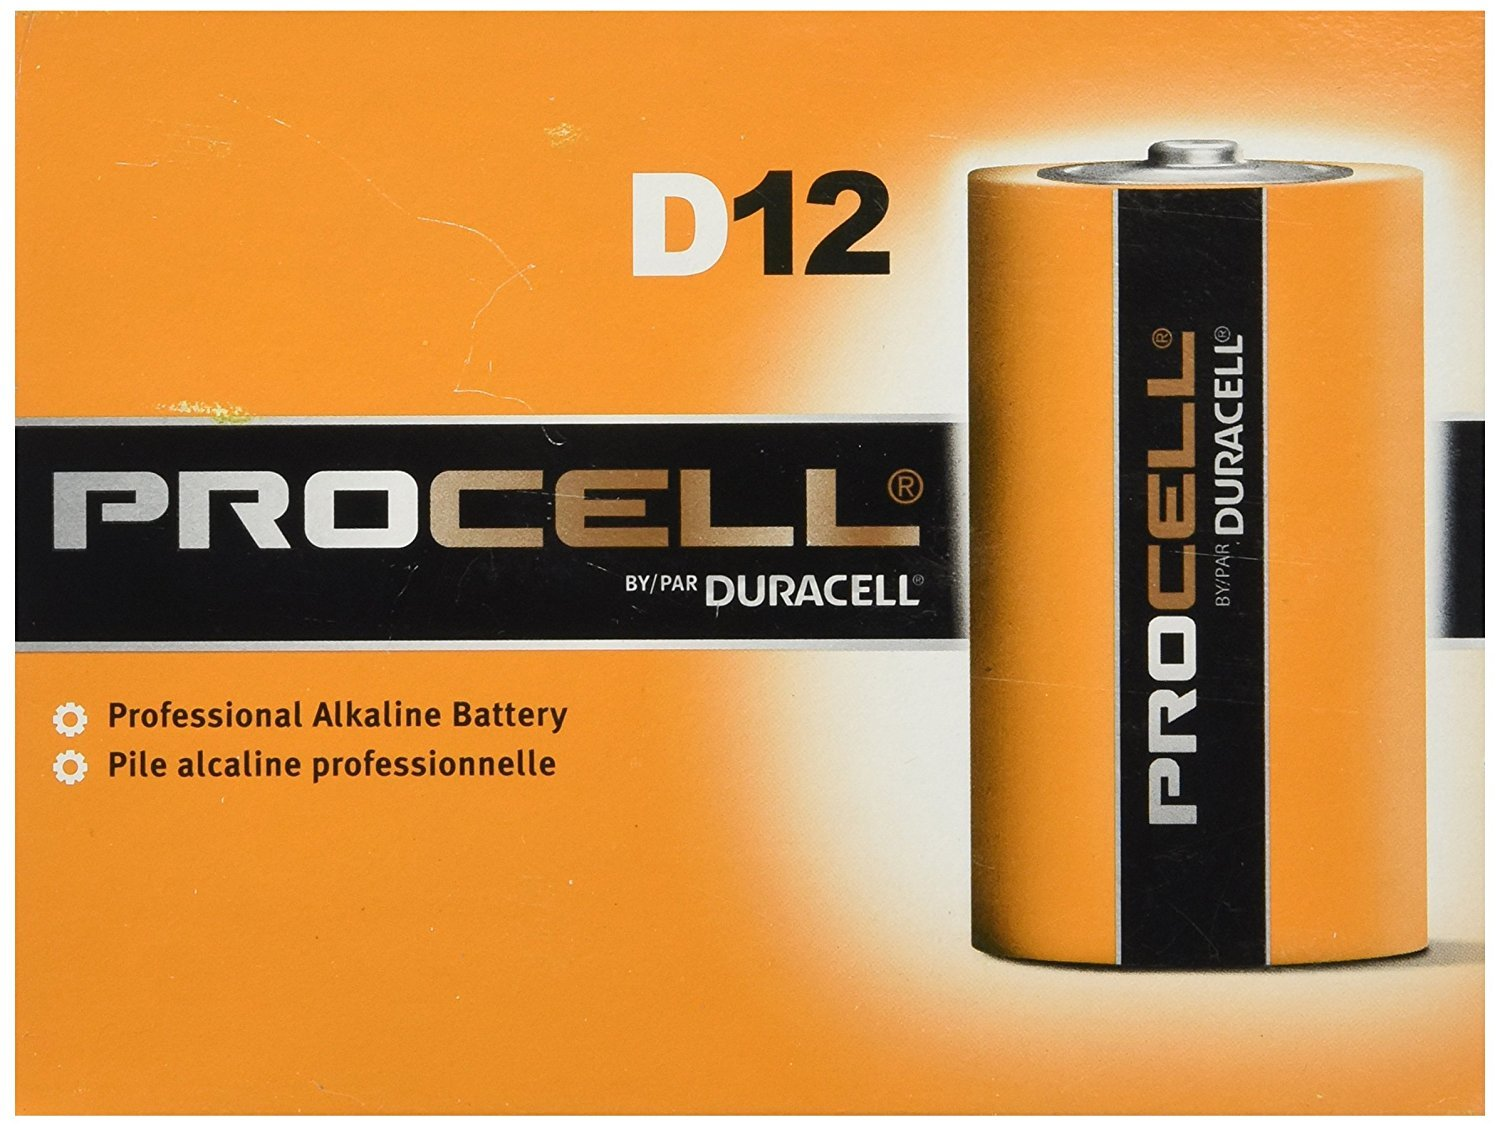 D Battery Procell PC1300 Professional Batteries By Duracell   Case Of 72   QTY 6 X 12 Pack   Value Box